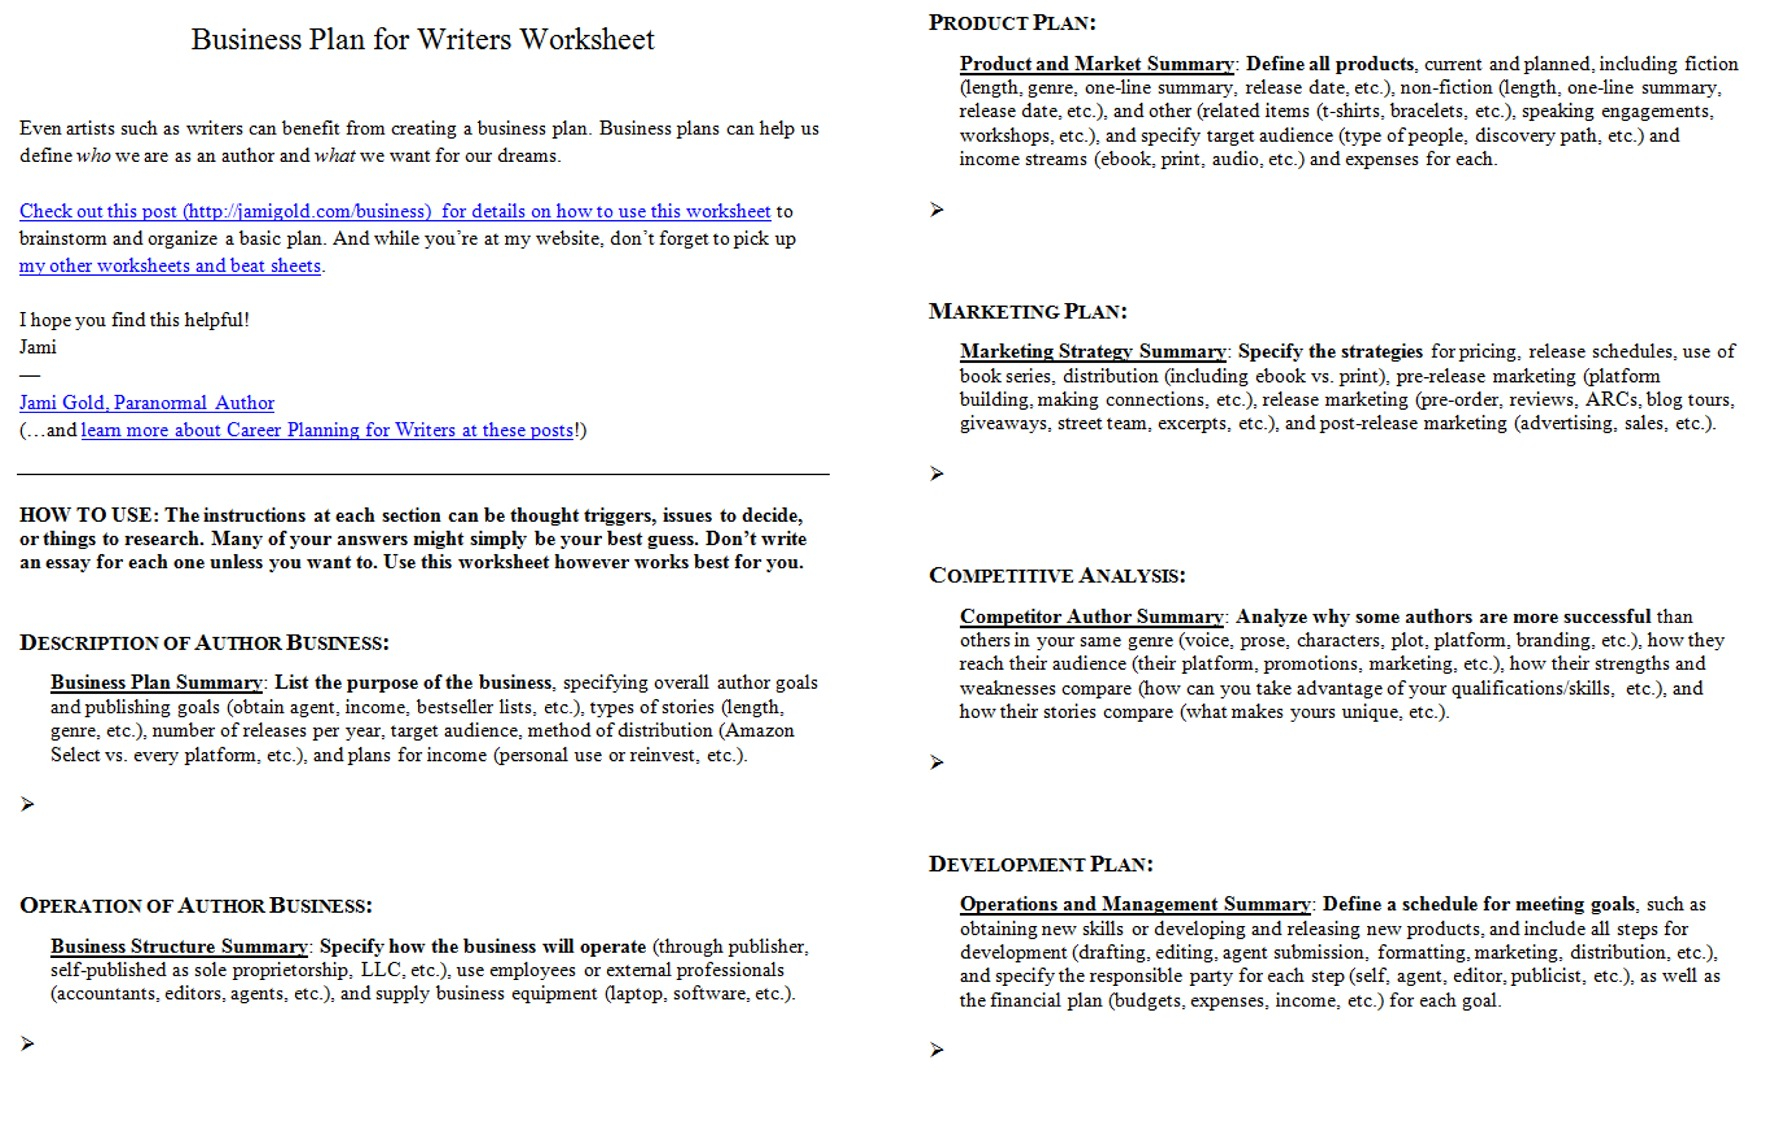 Proatmealus  Scenic Worksheets For Writers  Jami Gold Paranormal Author With Lovable Screen Shot Of Both Pages Of The Business Plan For Writers Worksheet With Endearing Computer Skills Worksheets Also Free Printable Worksheets On Prepositions In Addition Non Renewable Resources Worksheets And Preschool Concepts Worksheets As Well As Suffixes Ly And Ful Worksheets Additionally Pdf Grammar Worksheets From Jamigoldcom With Proatmealus  Lovable Worksheets For Writers  Jami Gold Paranormal Author With Endearing Screen Shot Of Both Pages Of The Business Plan For Writers Worksheet And Scenic Computer Skills Worksheets Also Free Printable Worksheets On Prepositions In Addition Non Renewable Resources Worksheets From Jamigoldcom